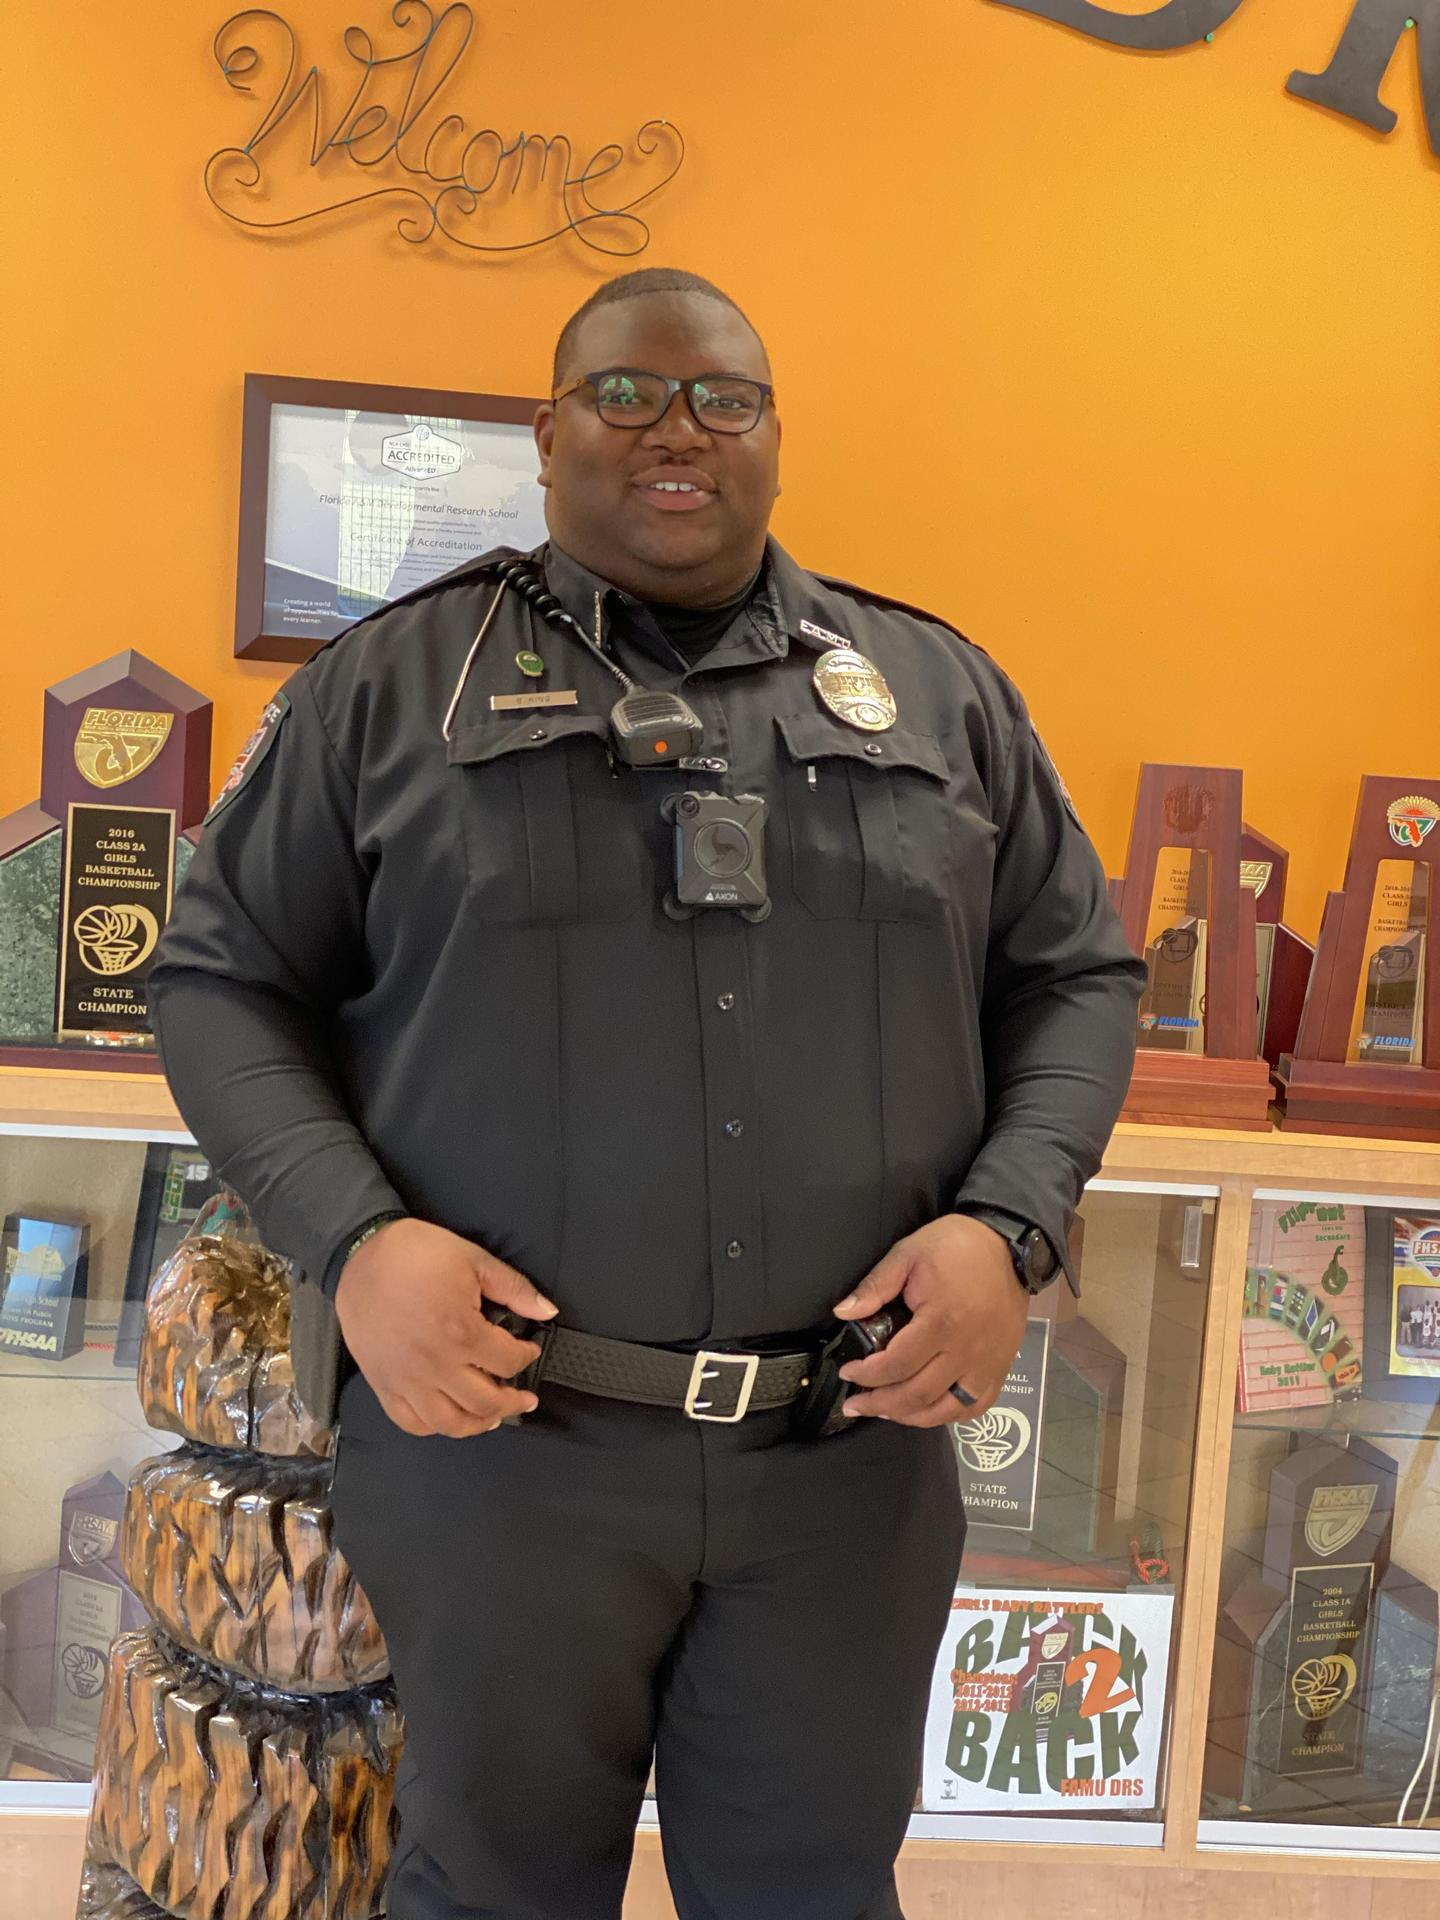 Officer King, SRO